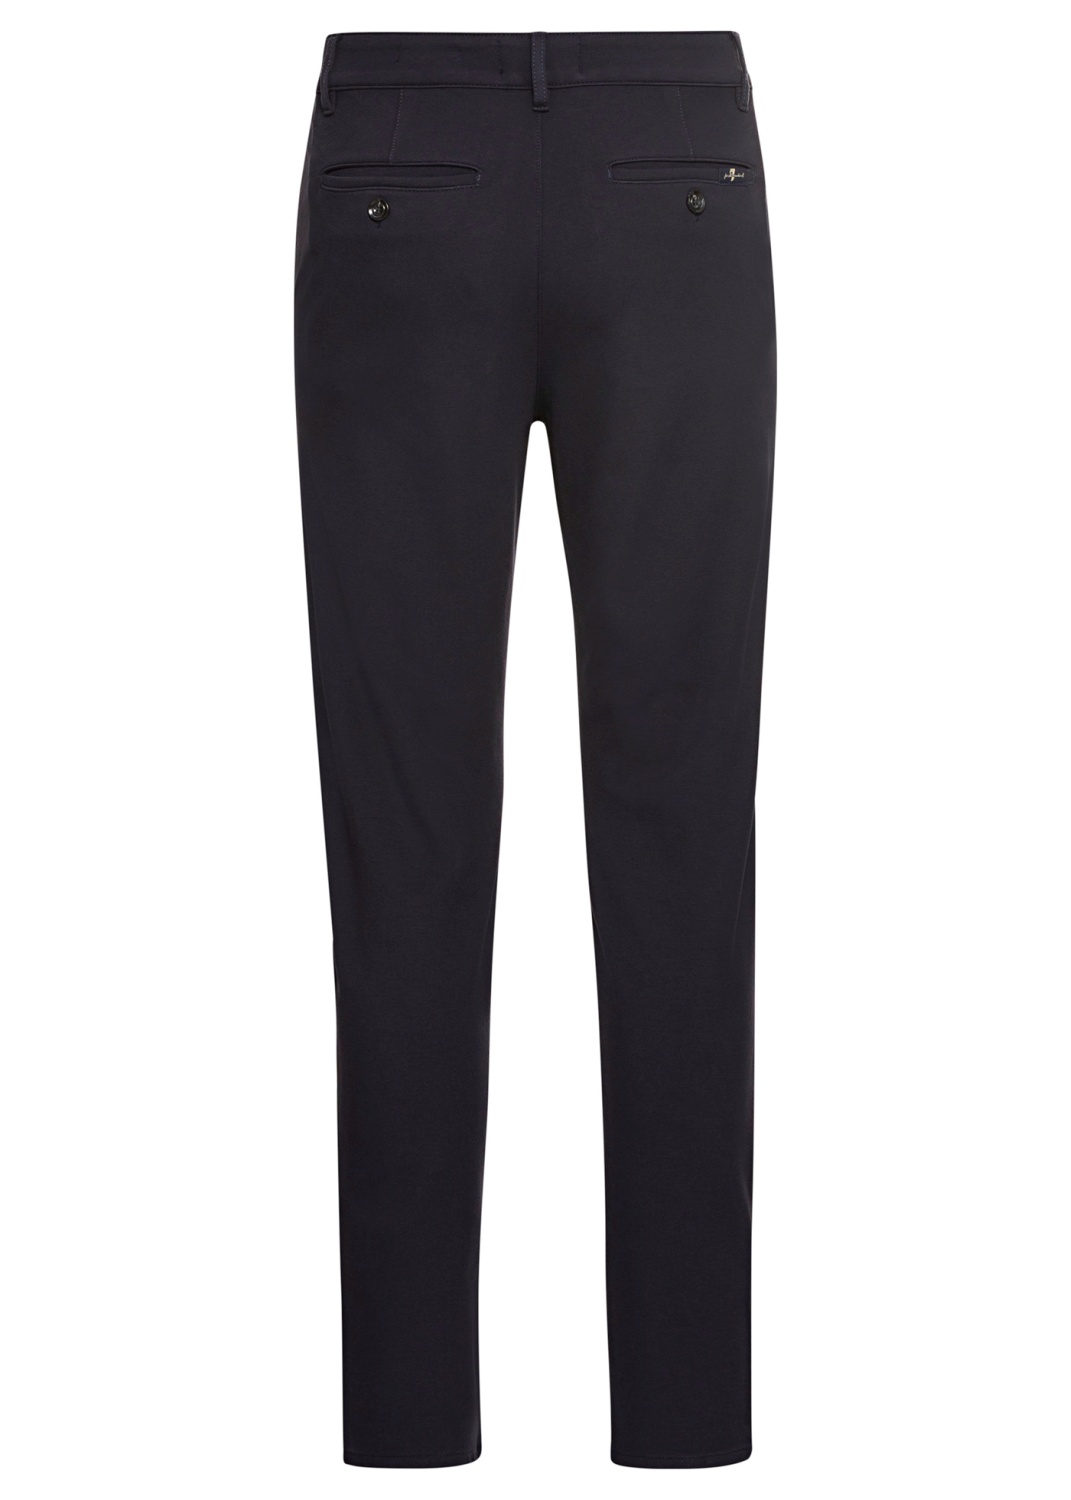 TRAVEL CHINO Double Knit  Navy image number 1